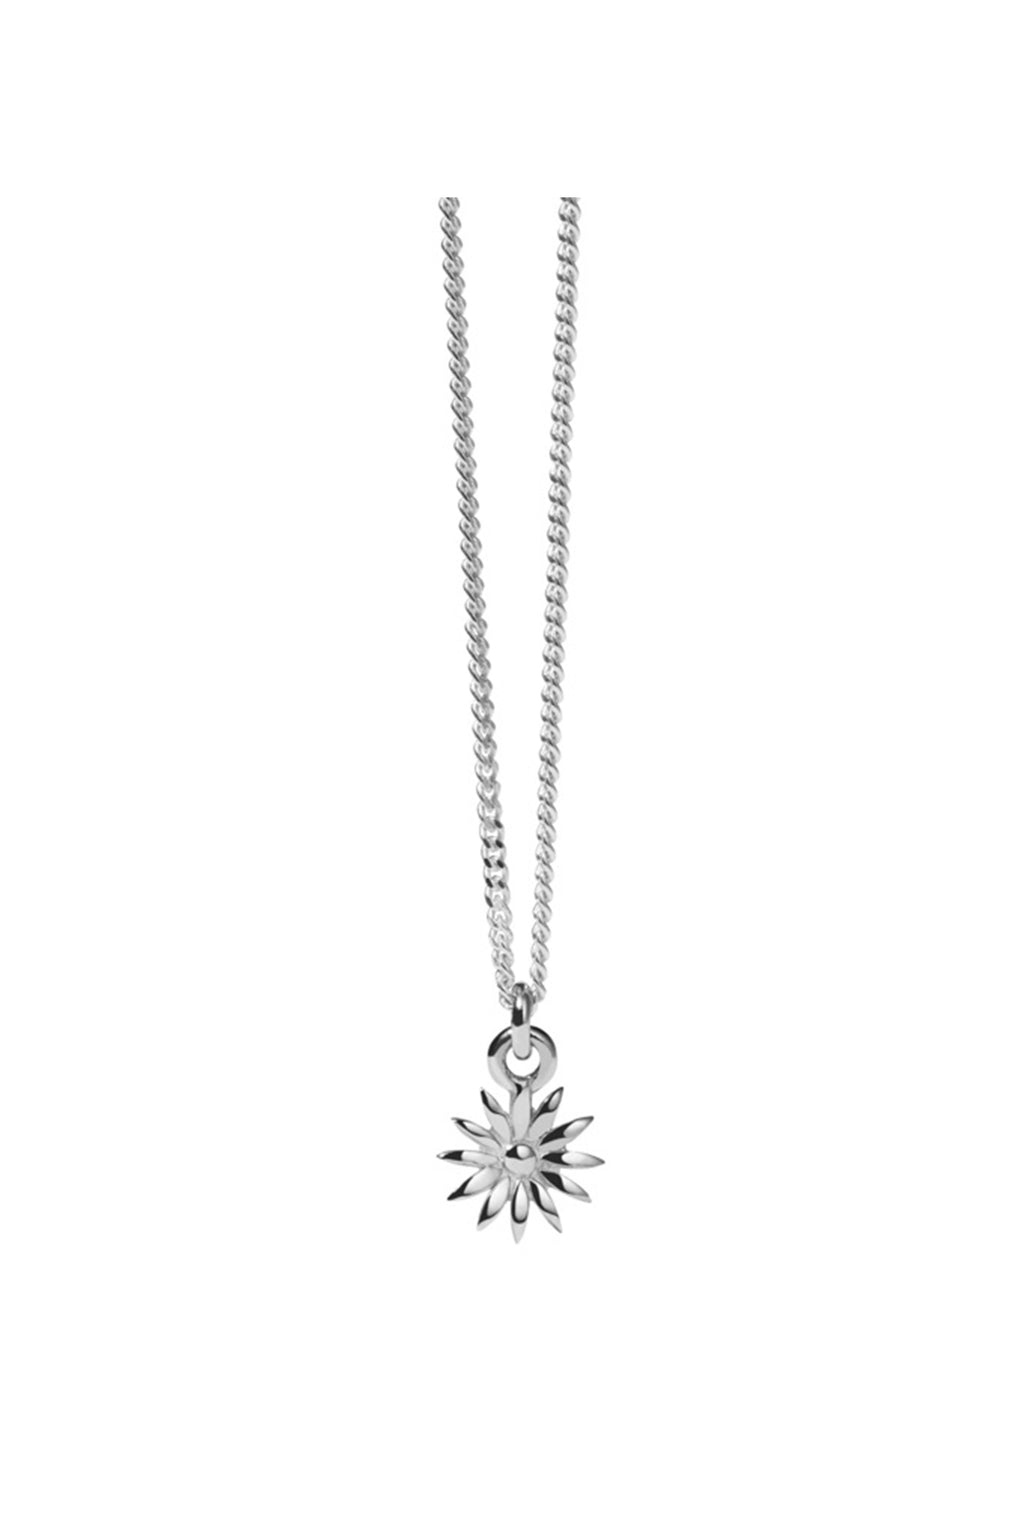 Dazed Charm Necklace | Sterling Silver